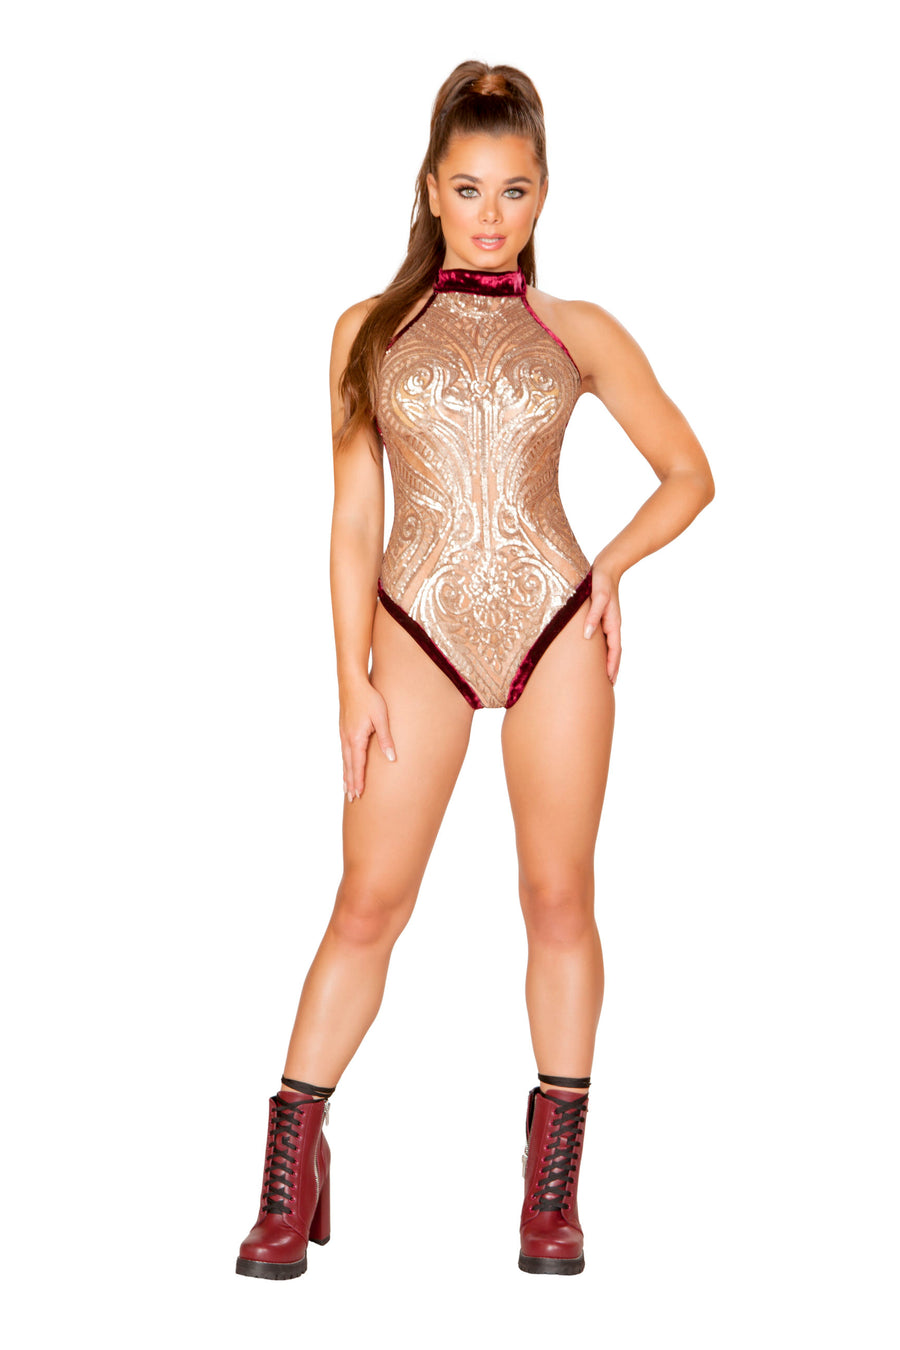 Sheer Sequin Bodysuit with Velvet Back - Rave Bodysuits & One Pieces, Roma - YourLamode